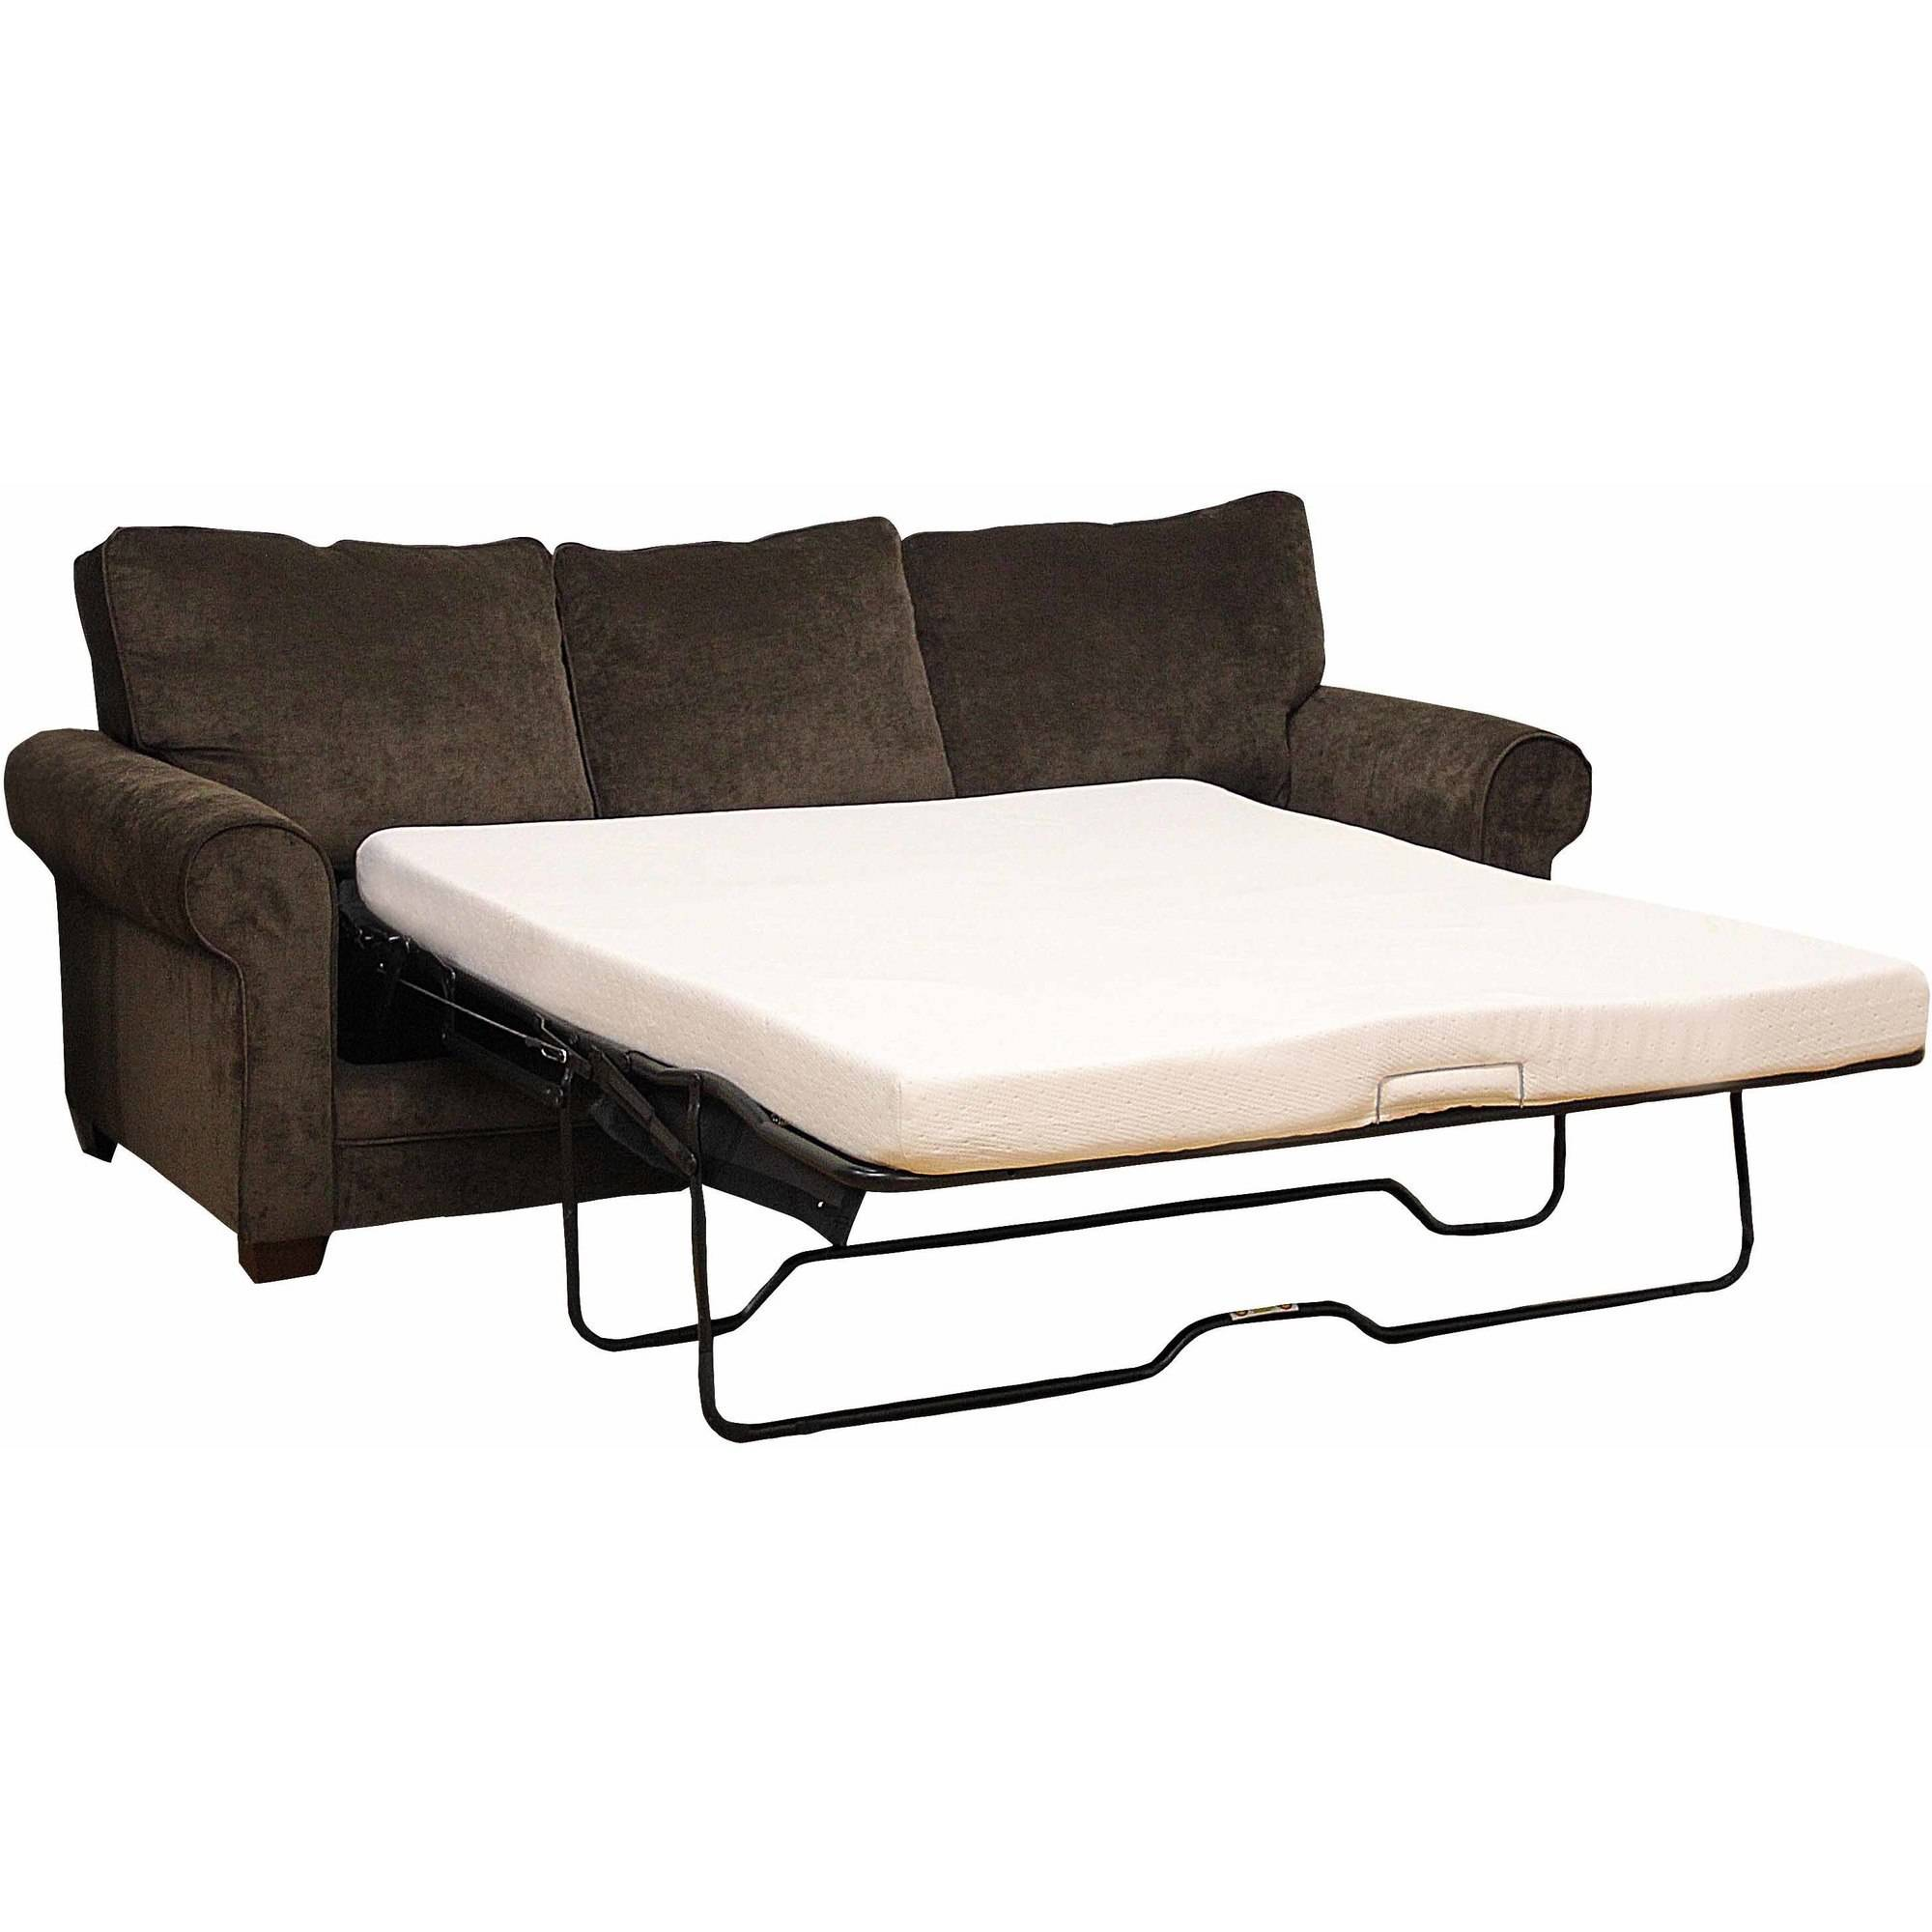 furniture & rug: balkarp sofa bed | ikea sofa beds | ikea futon chair